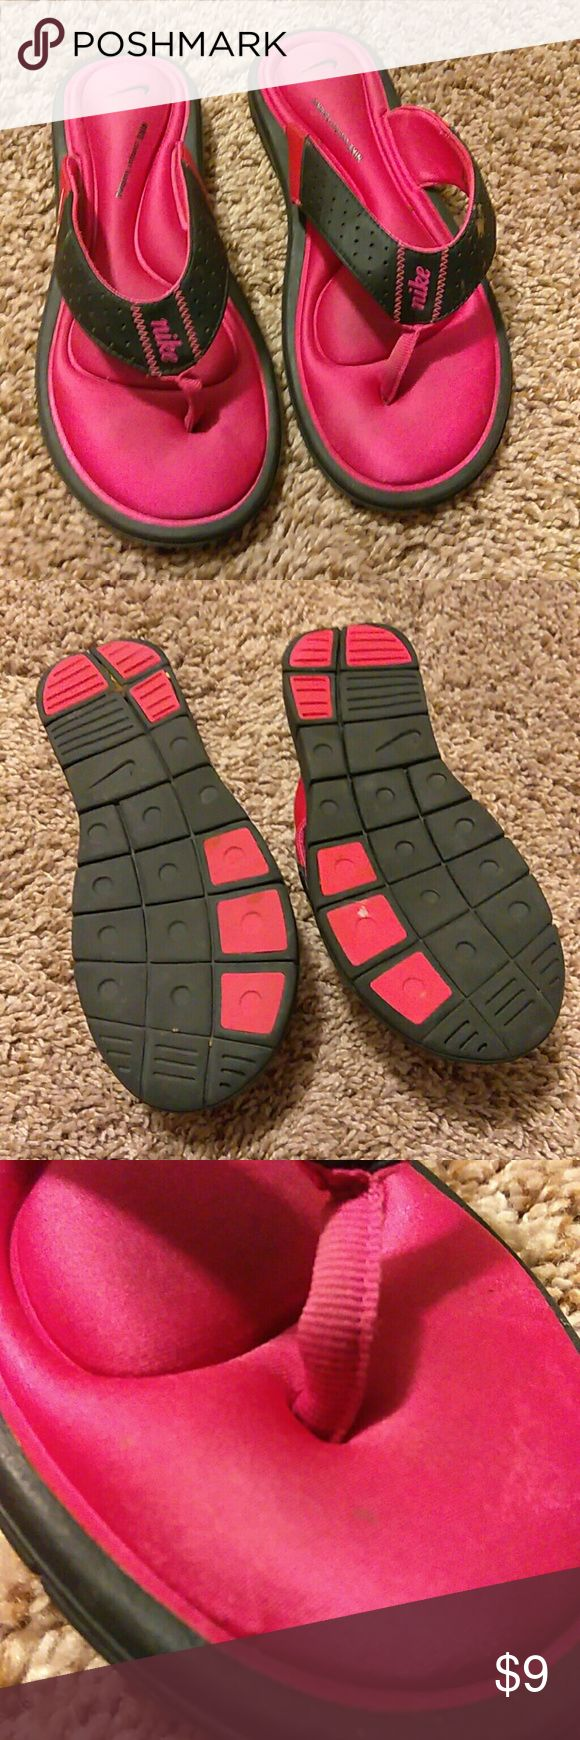 Nike Memory foam super comfy judt need a little wipe down Nike Shoes Sandals